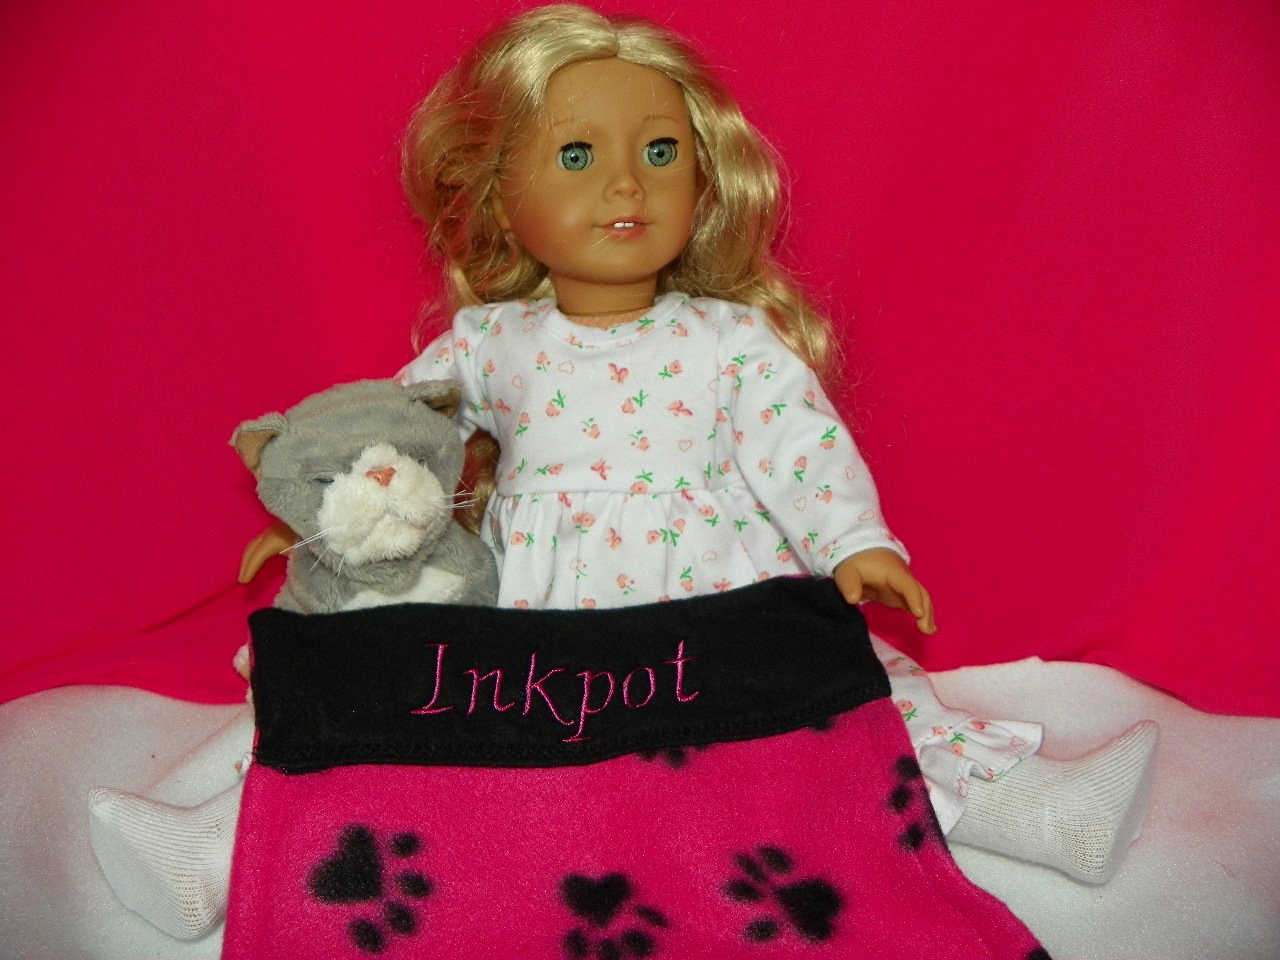 American Girl Doll Pet Kitty INKPOT: Personalized Paw Print Design Blanket